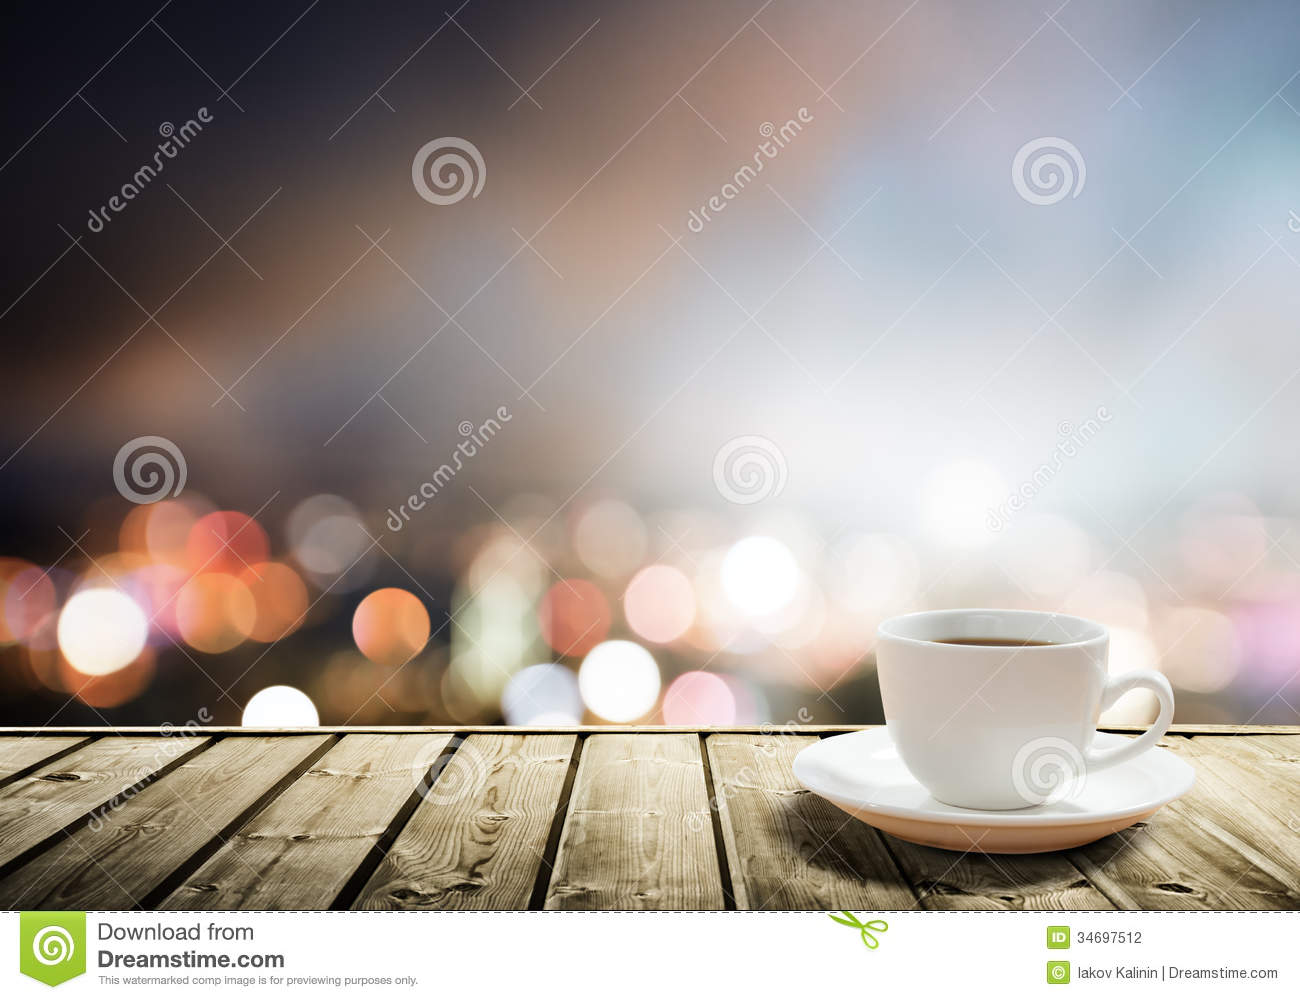 coffee on table stock photo - image: 34885100